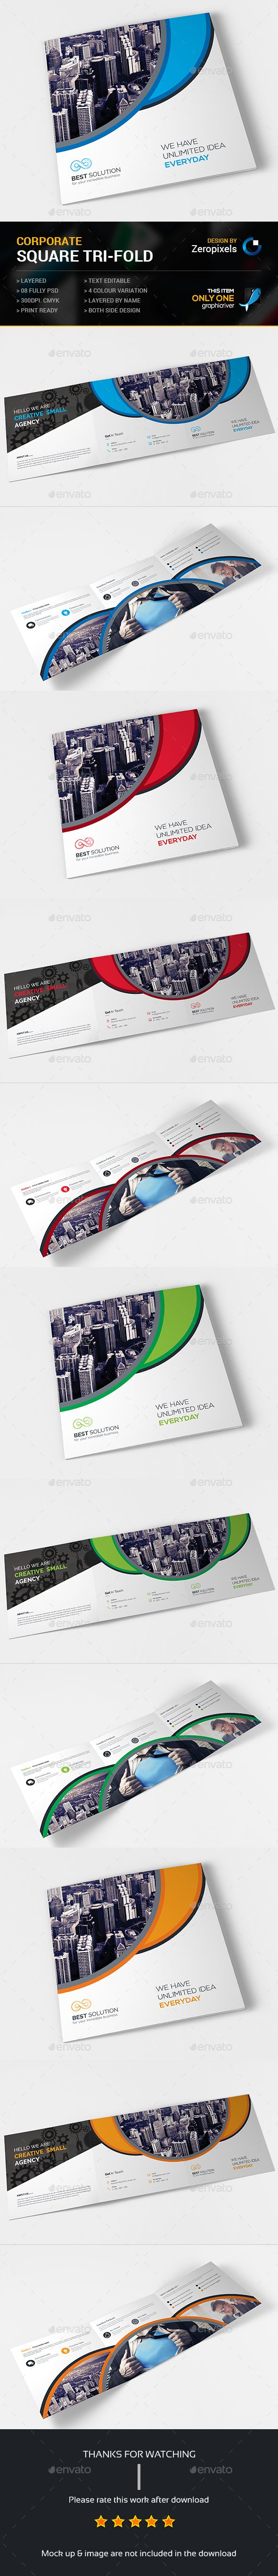 Corporate Square Tri-fold Brochure Template PSD. Download here: http://graphicriver.net/item/corporate-square-trifold-brochure/14993348?ref=ksioks